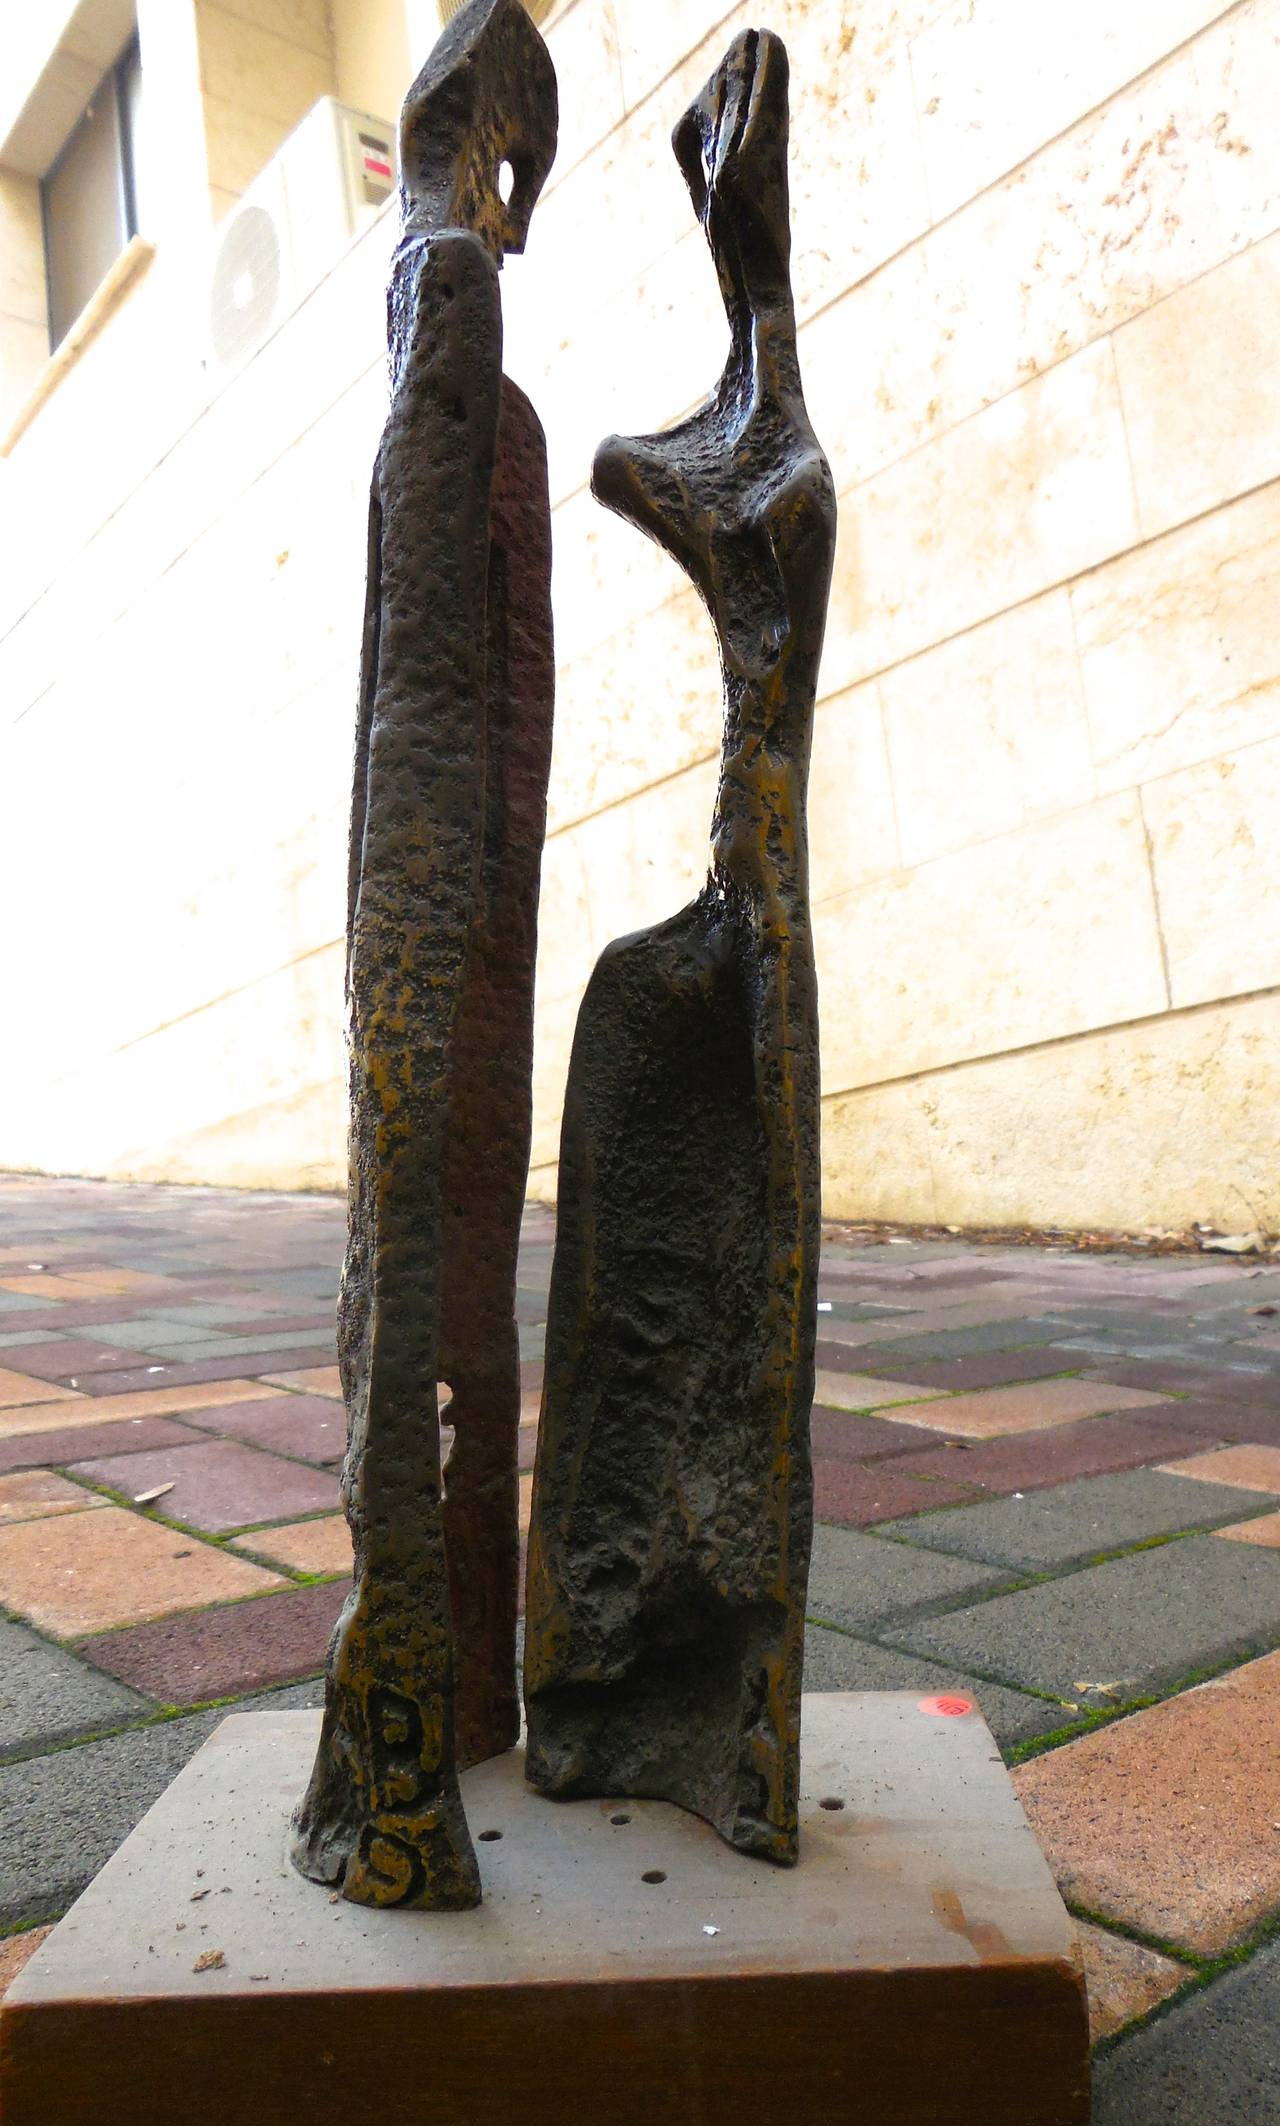 Aharon Bezalel (born Afghanistan 1926) Born in Afghanistan in 1926 and immigrated to Israel at an early age. As a youth was engaged as a silversmith and craftsman, and was a student of the sculptor Zev Ben-Zvi from whom he absorbed the basic